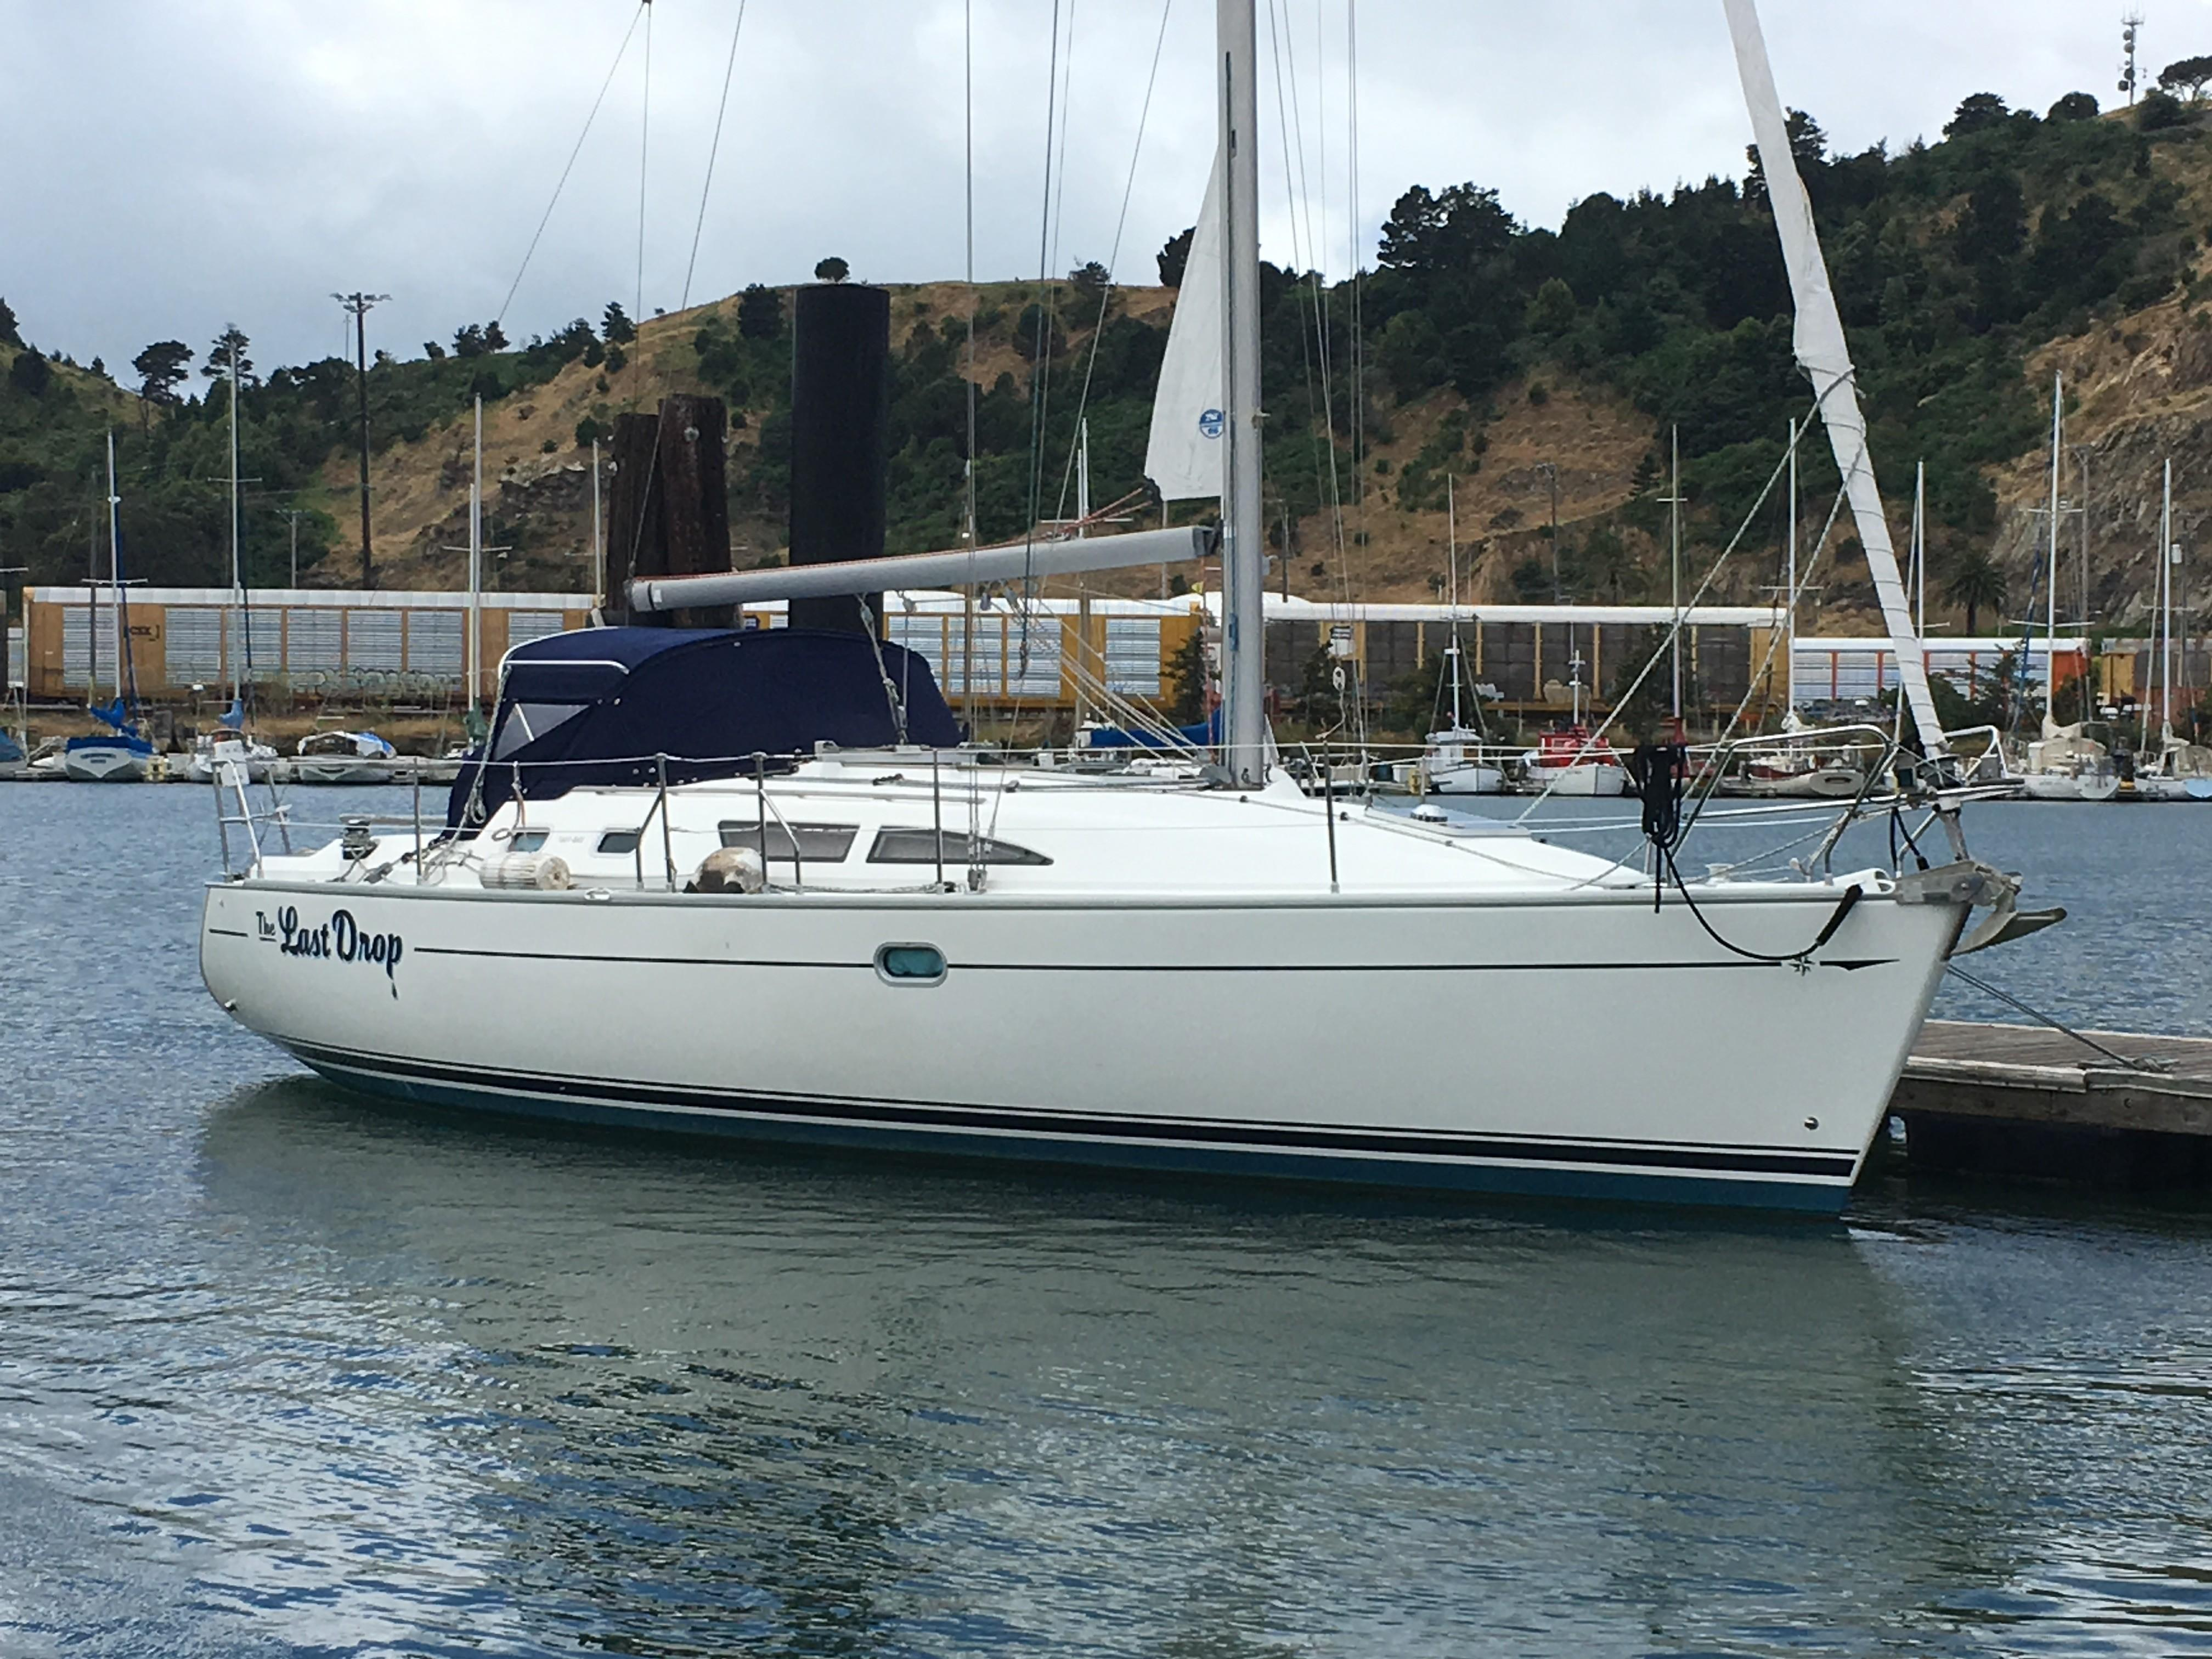 Jeanneau Sun Odyssey 37 Boats For Sale - City Yachts in United States